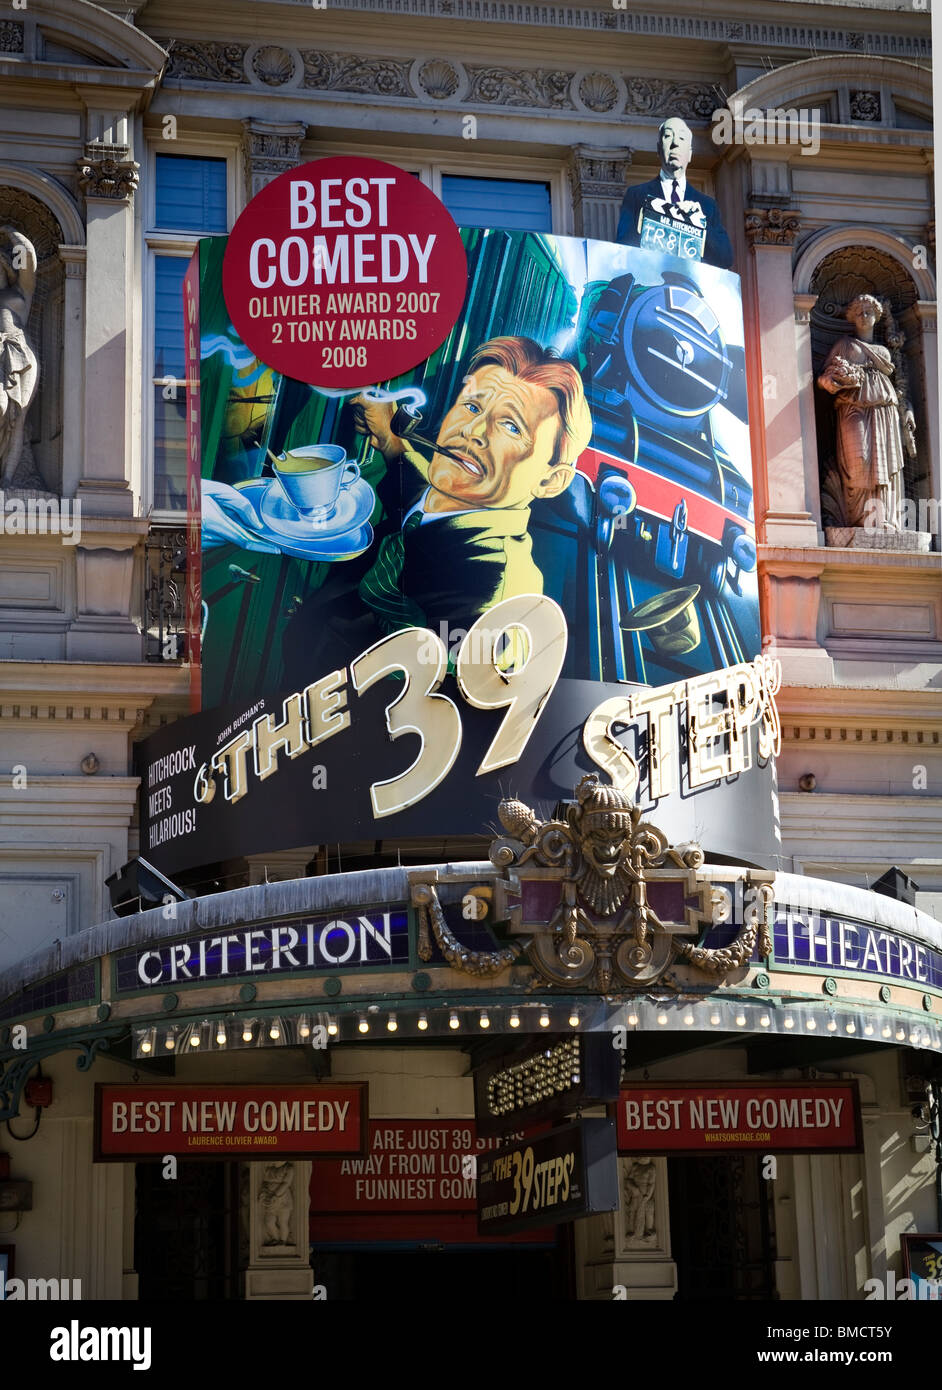 The 39 Steps Criterion Theatre Piccadilly Circus - Stock Image